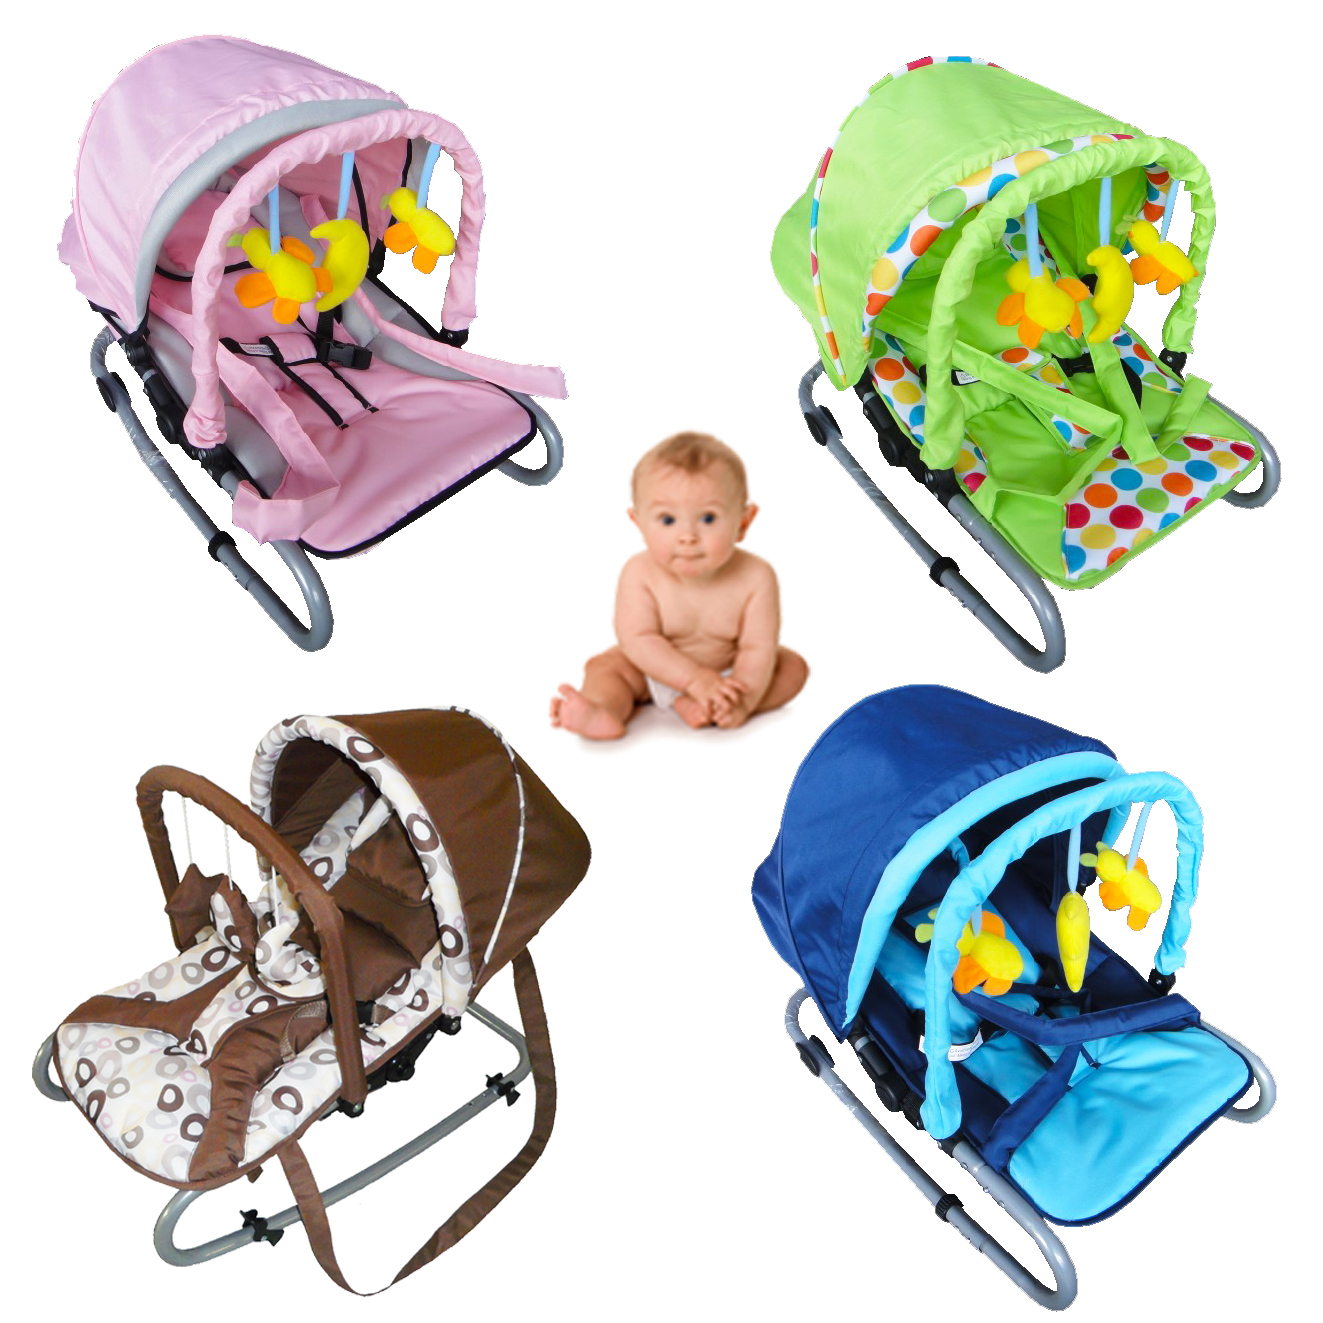 Child Bouncer Baby Infant Bungee Rocker Recline Chair With